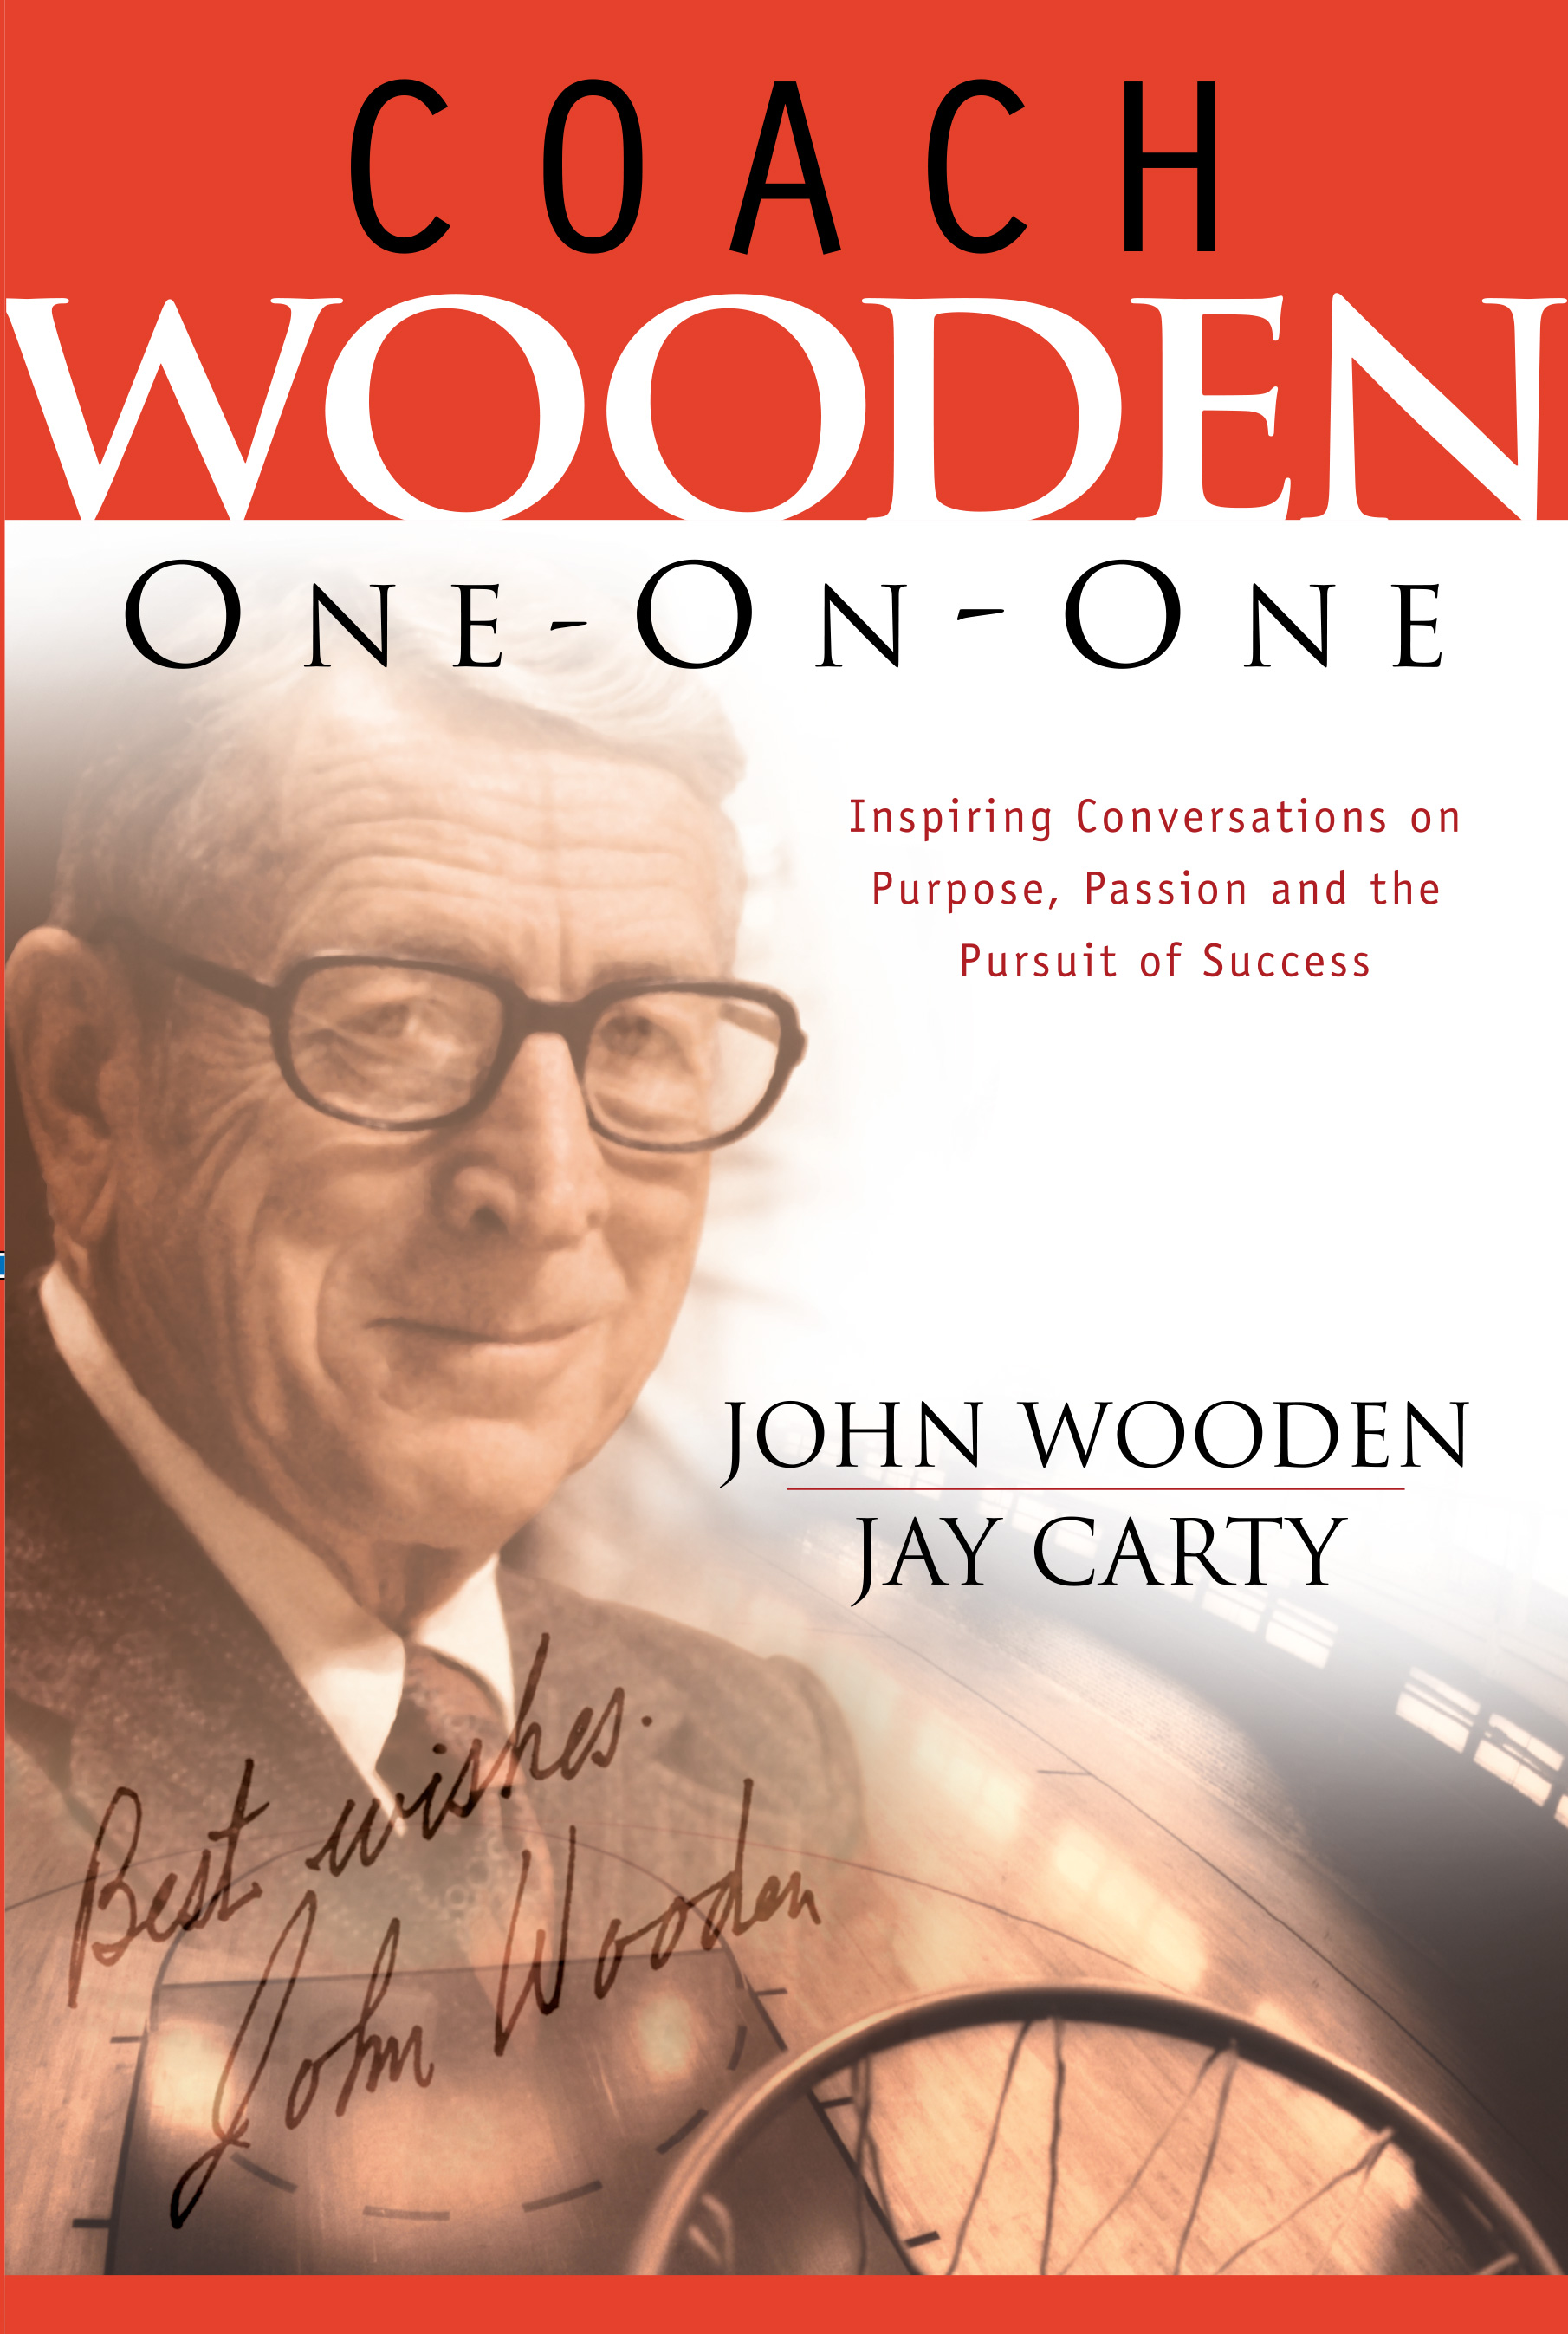 Coach Wooden One On One Baker Publishing Group